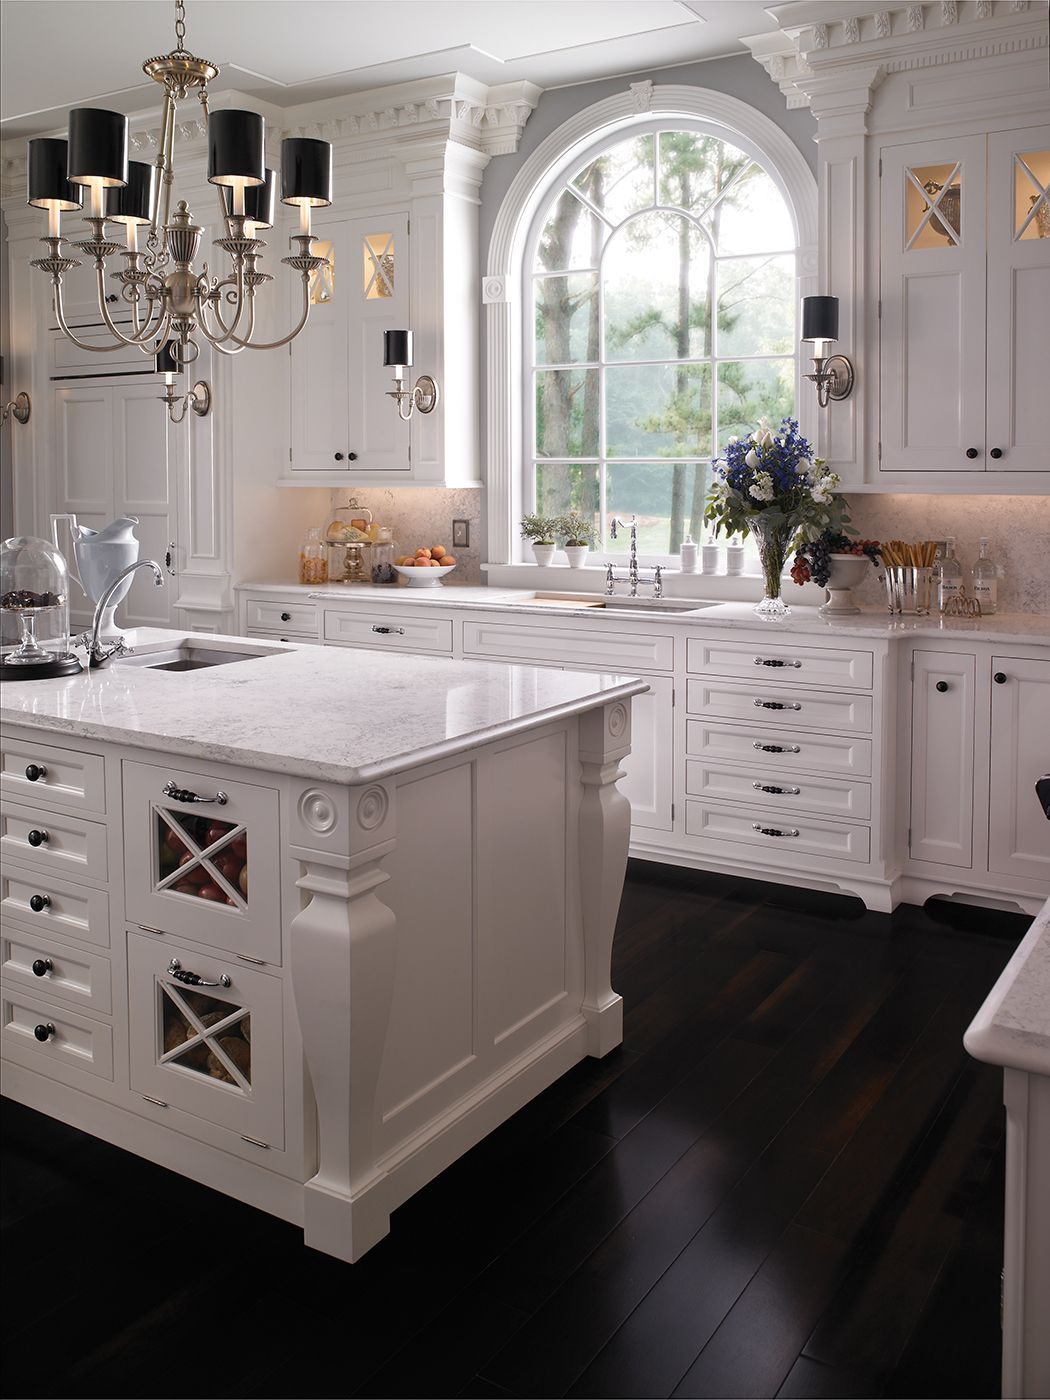 Traditional Southampton Kitchen By Woodmode Shown In Nordic White Finish On Regent Door Sty Kitchen Remodel Design Interior Design Kitchen Home Decor Kitchen